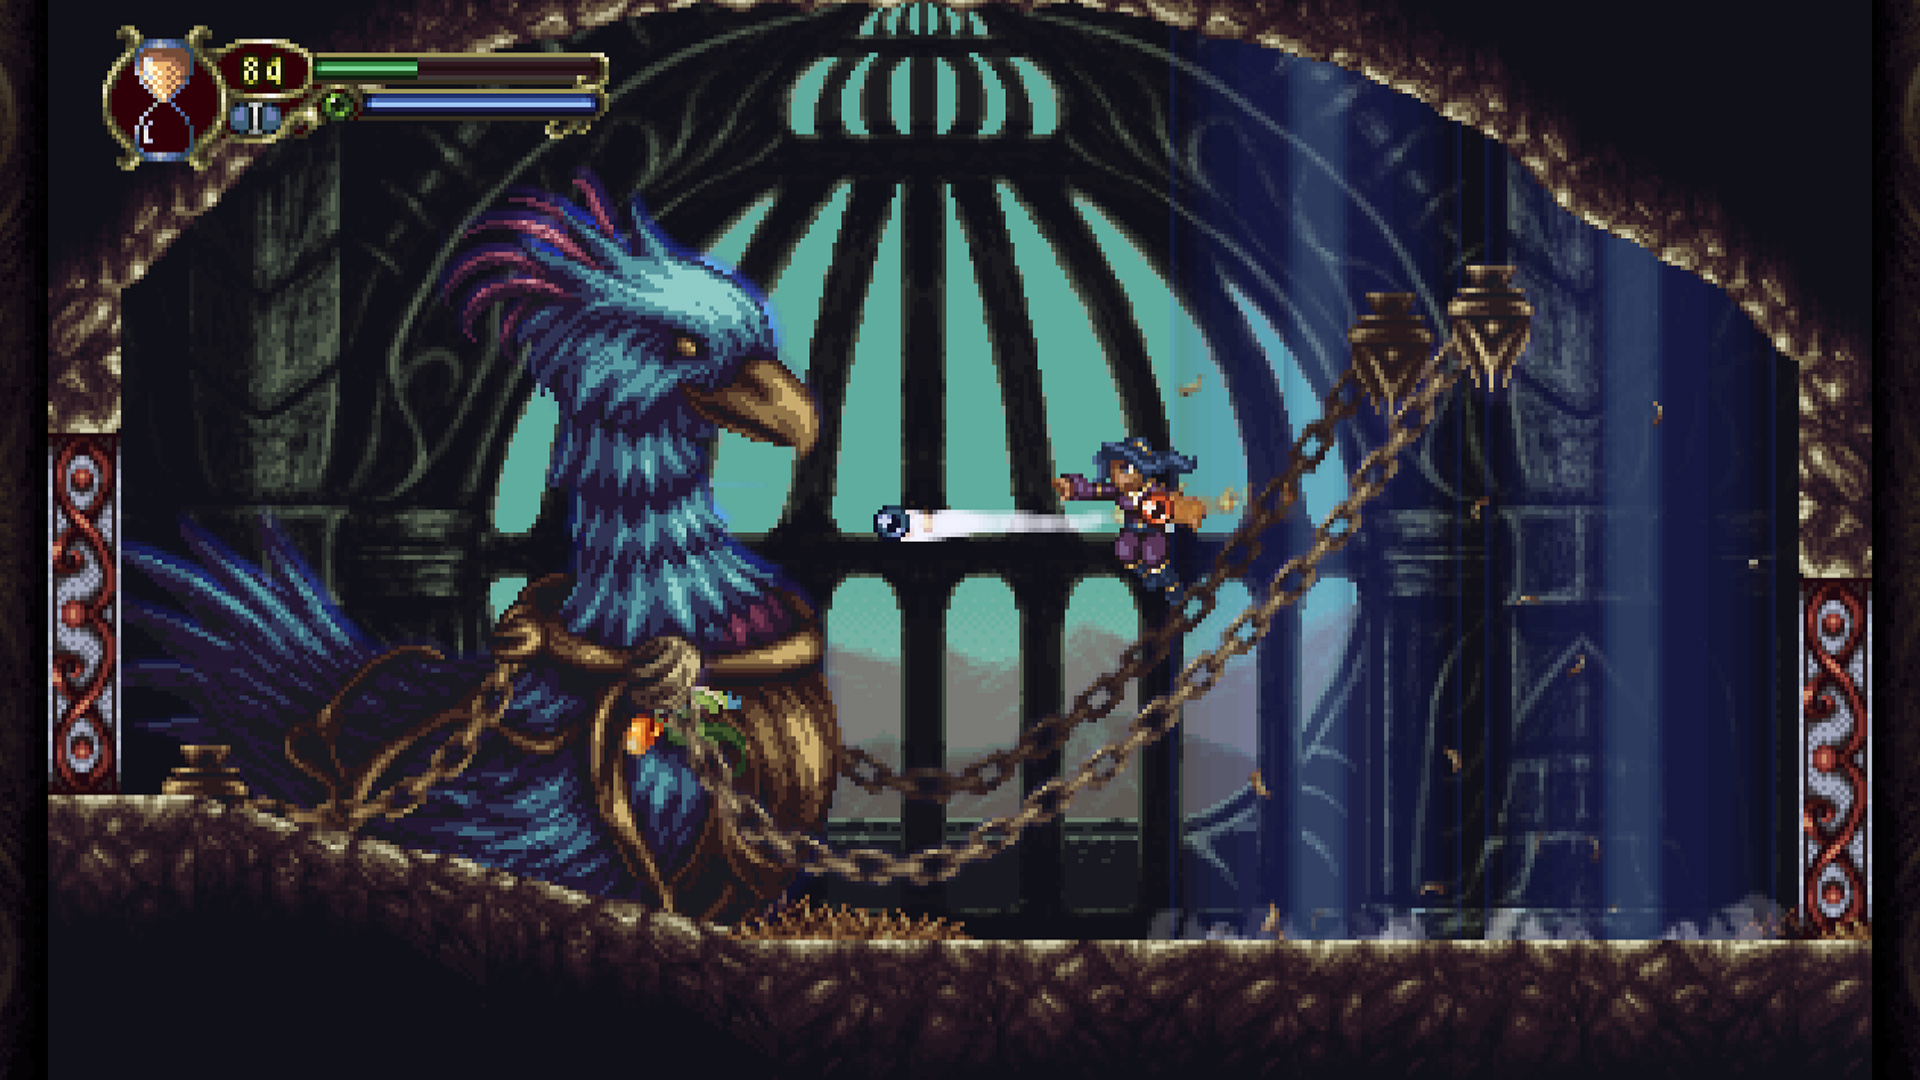 The Retrobeat Timespinner Is A Beautiful Symphony Of The Night